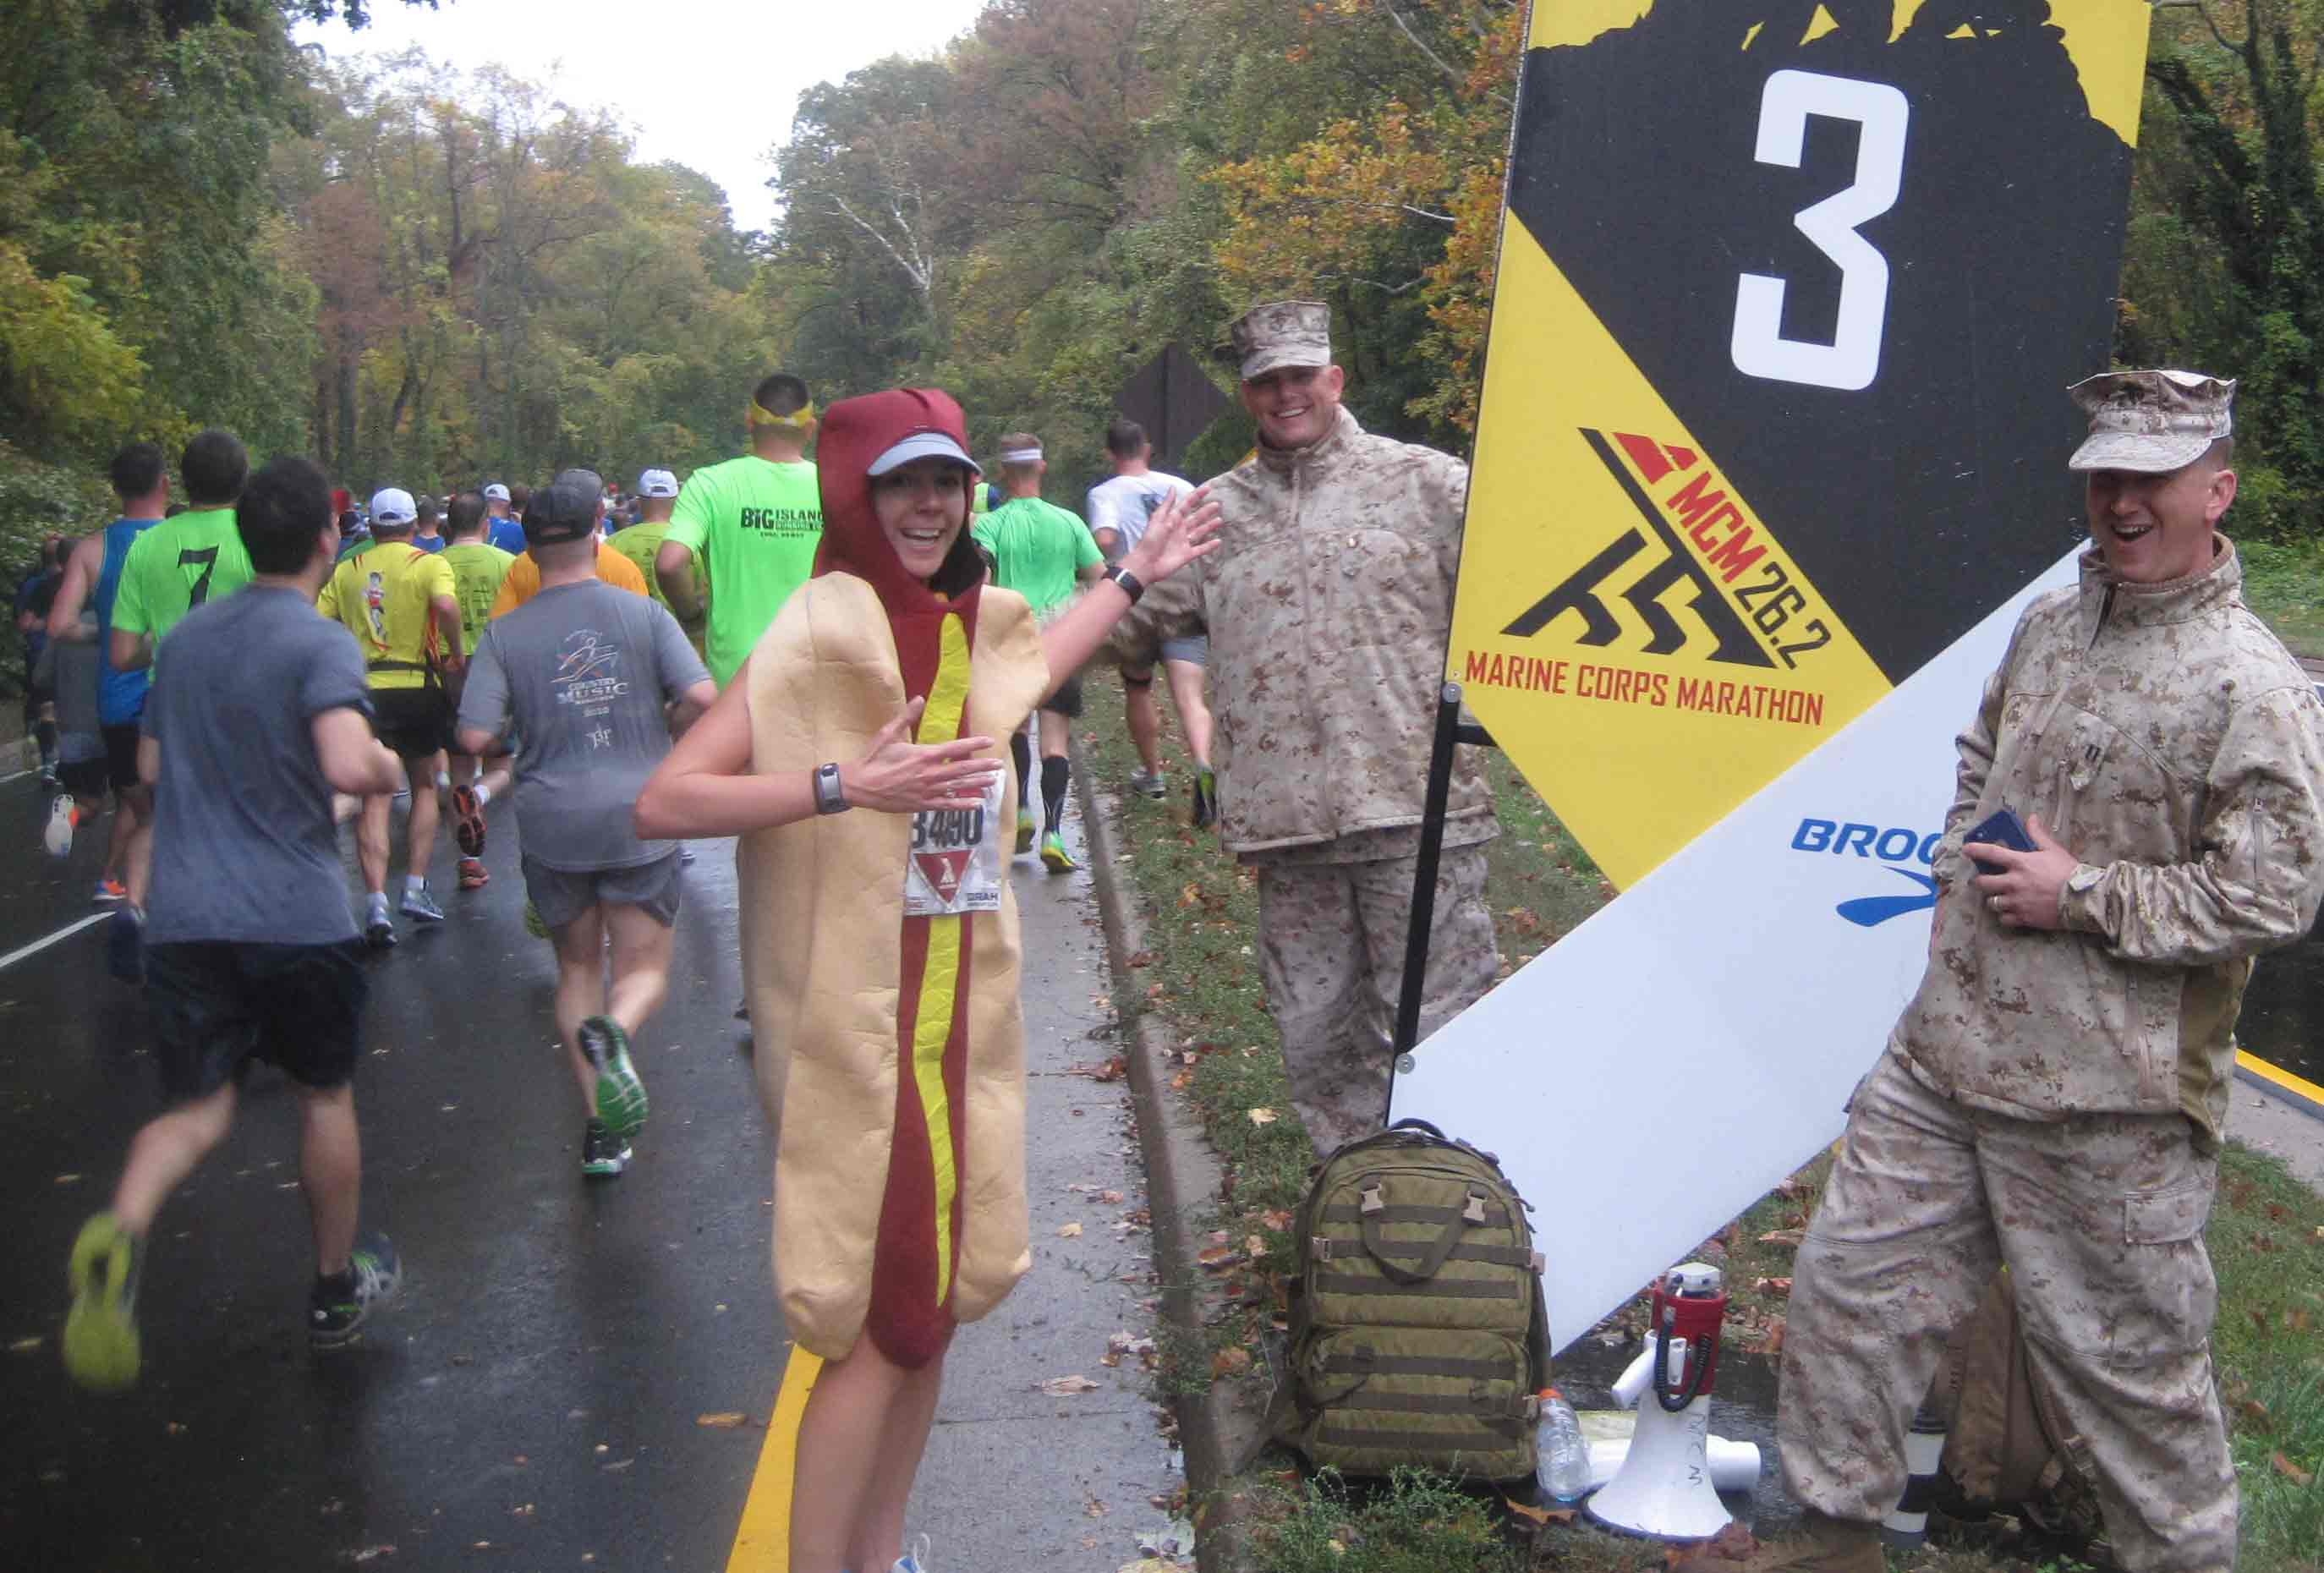 Fastest marathon dressed as a fast food item (female)